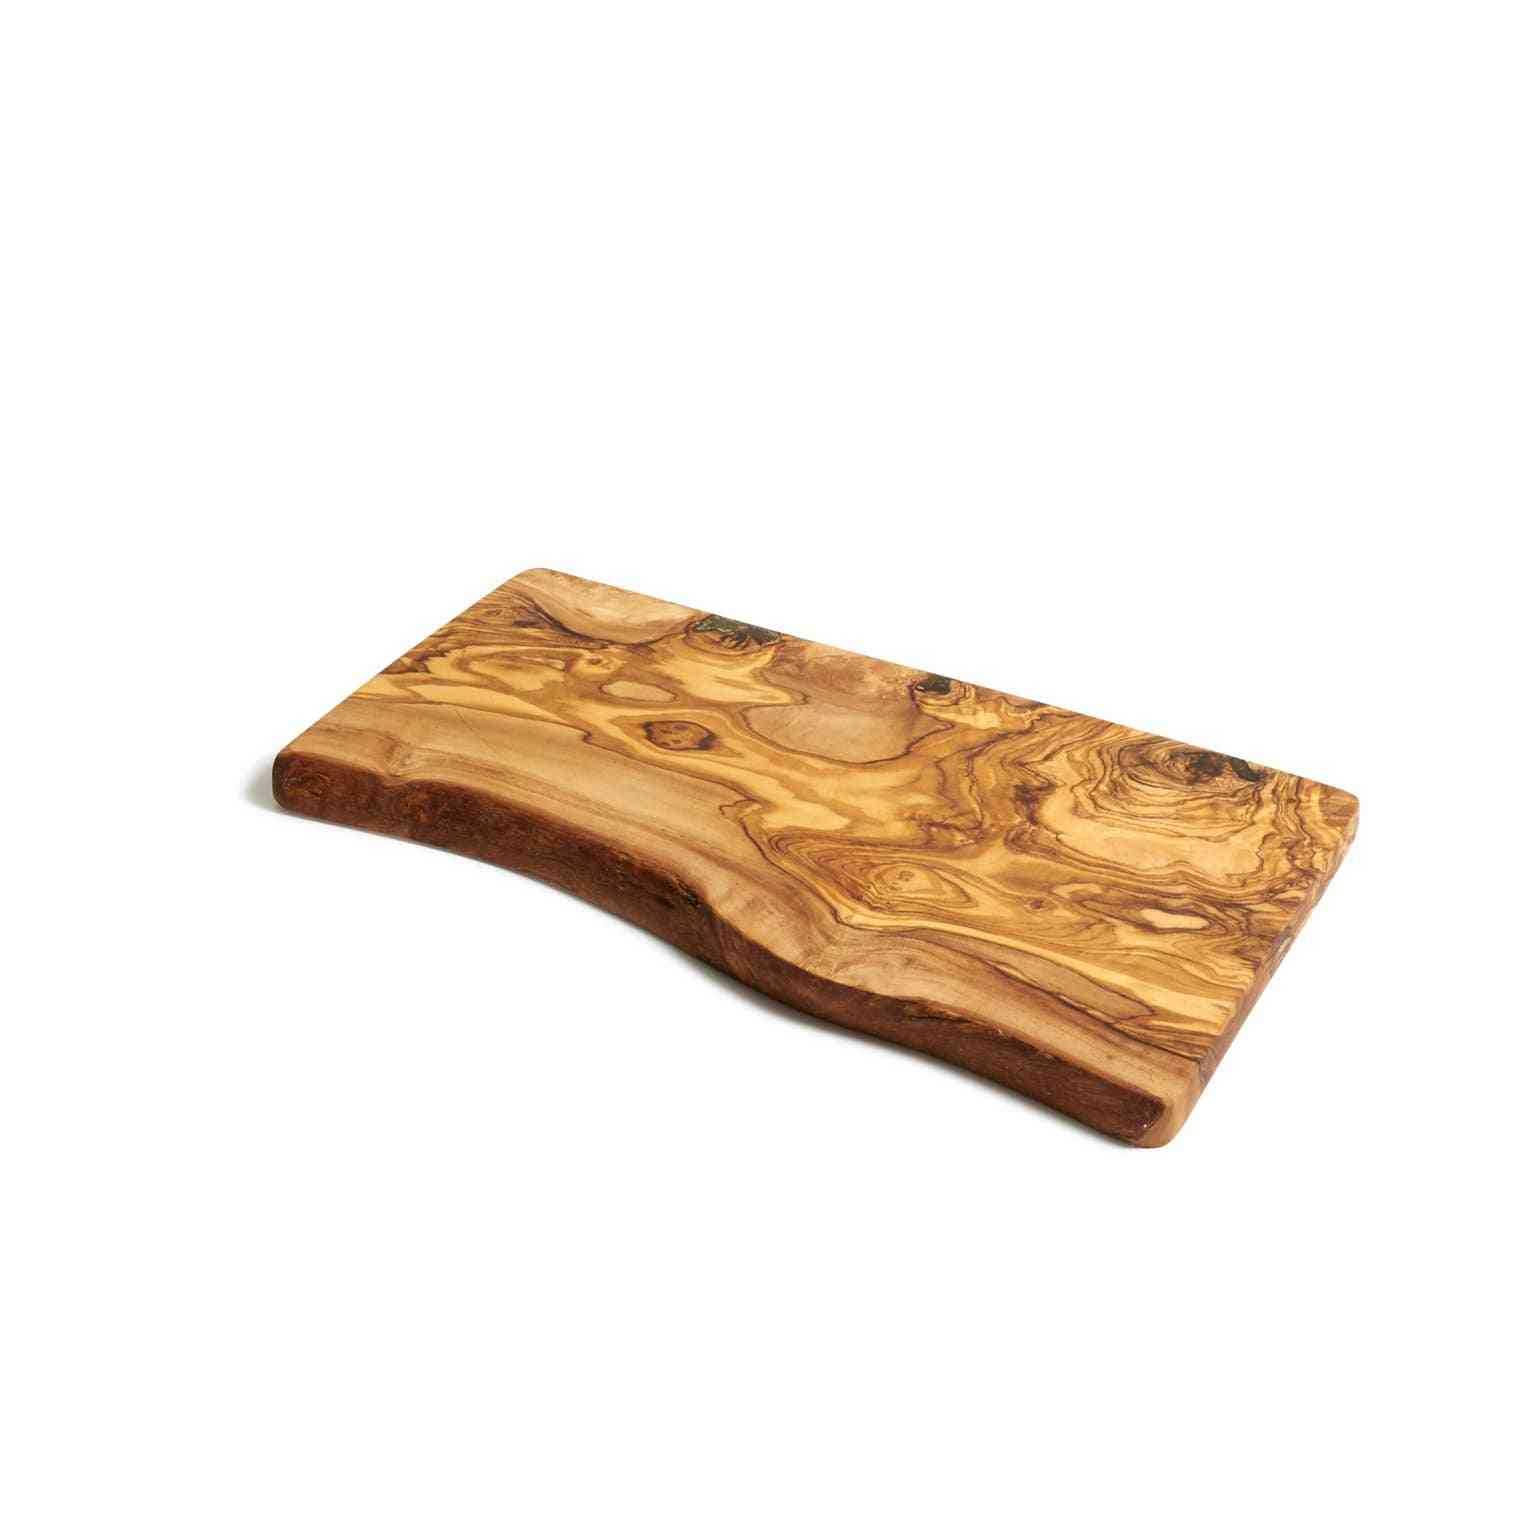 Olive Wood, Rustic Cutting Board Great For Carving Meat